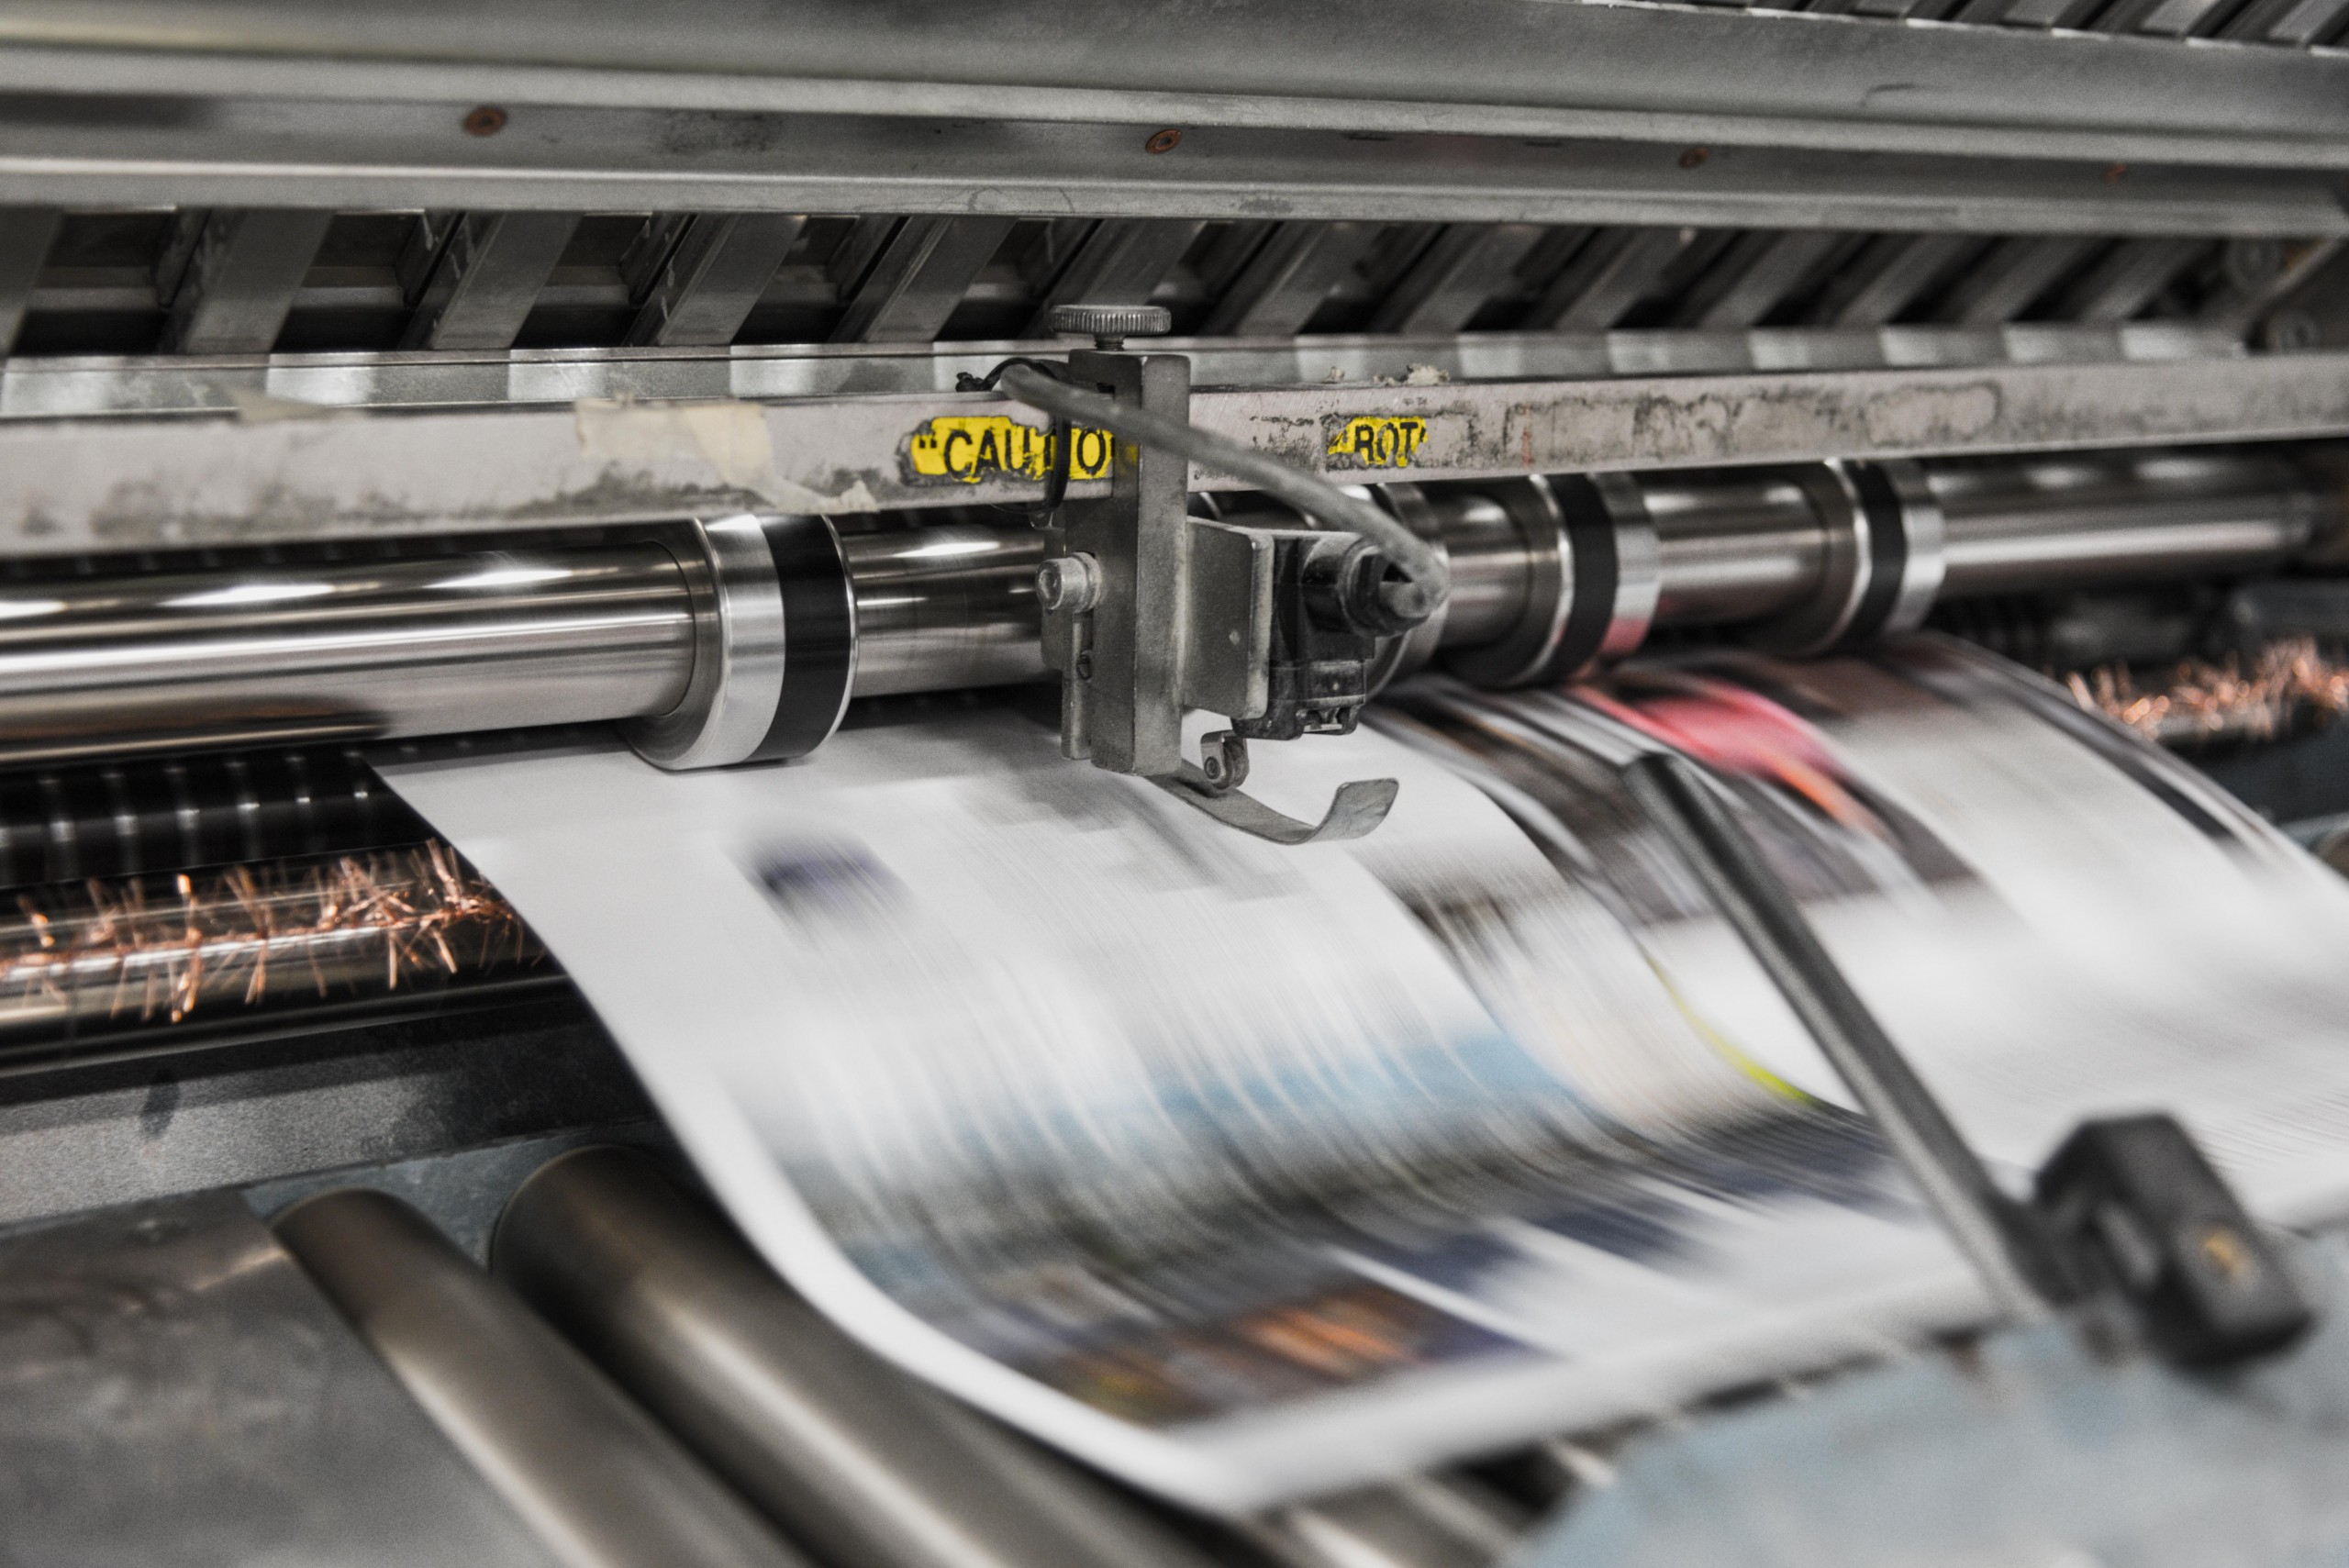 How it's made: Newspapers